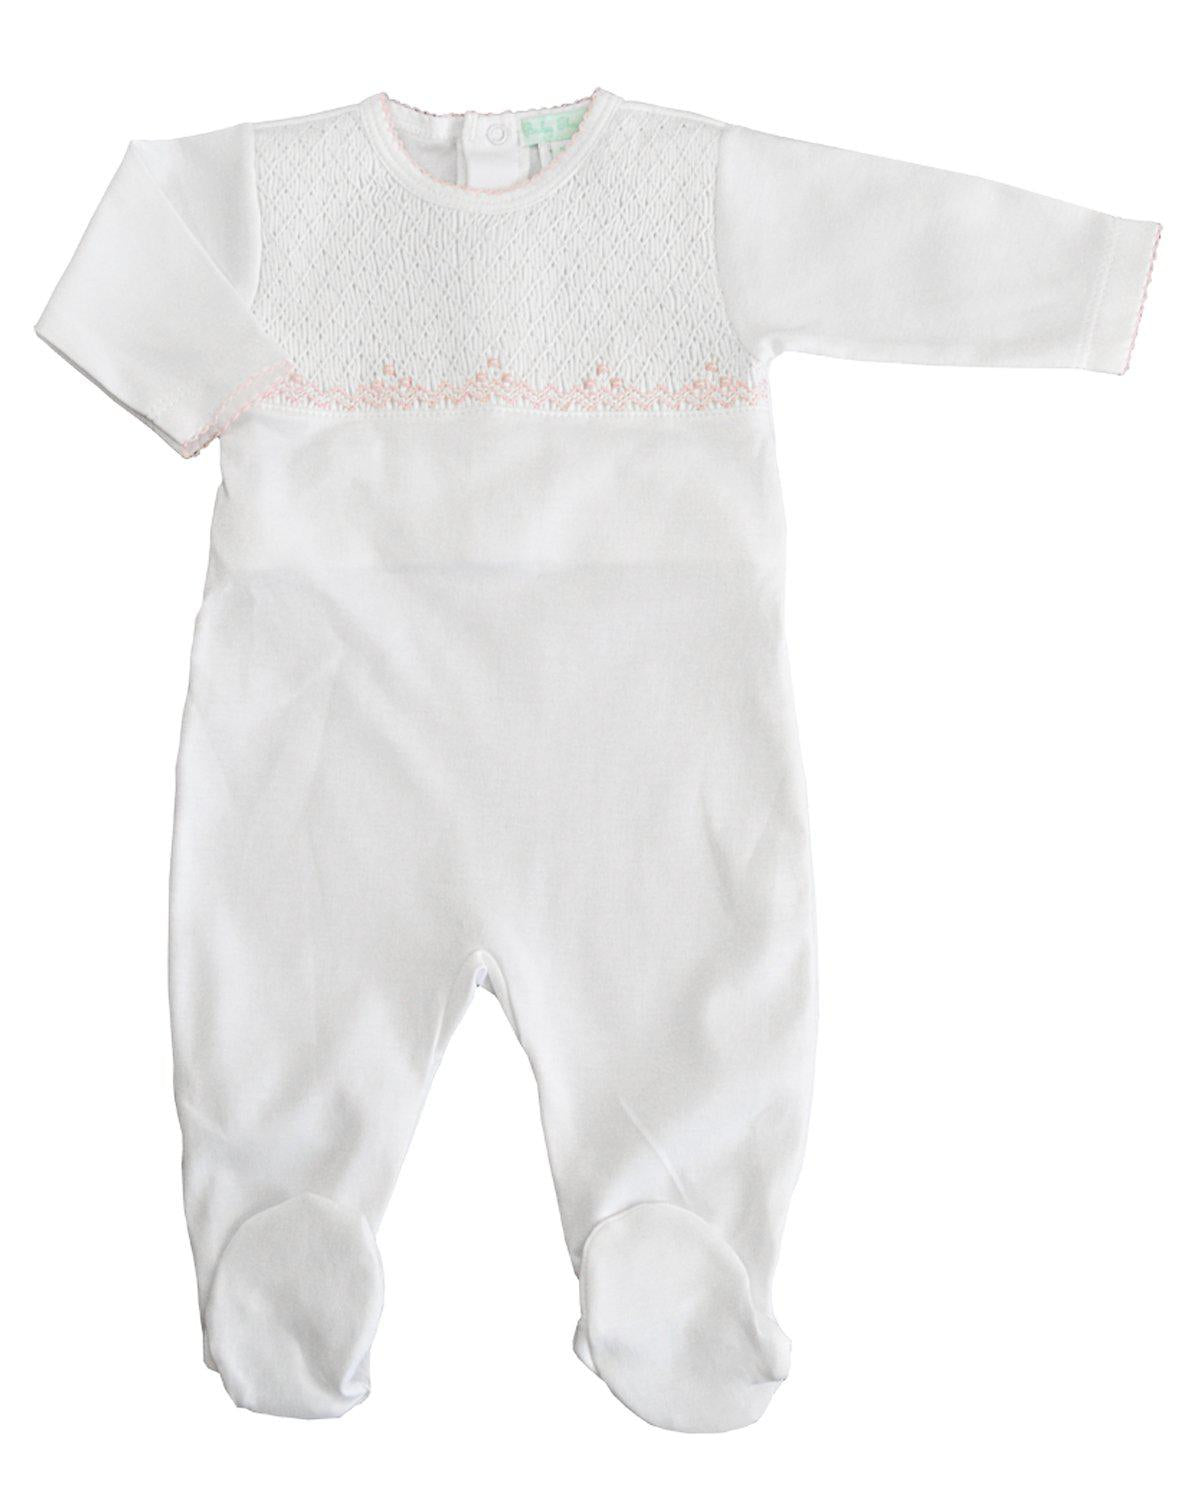 White Full Smocked Footie with pink trim